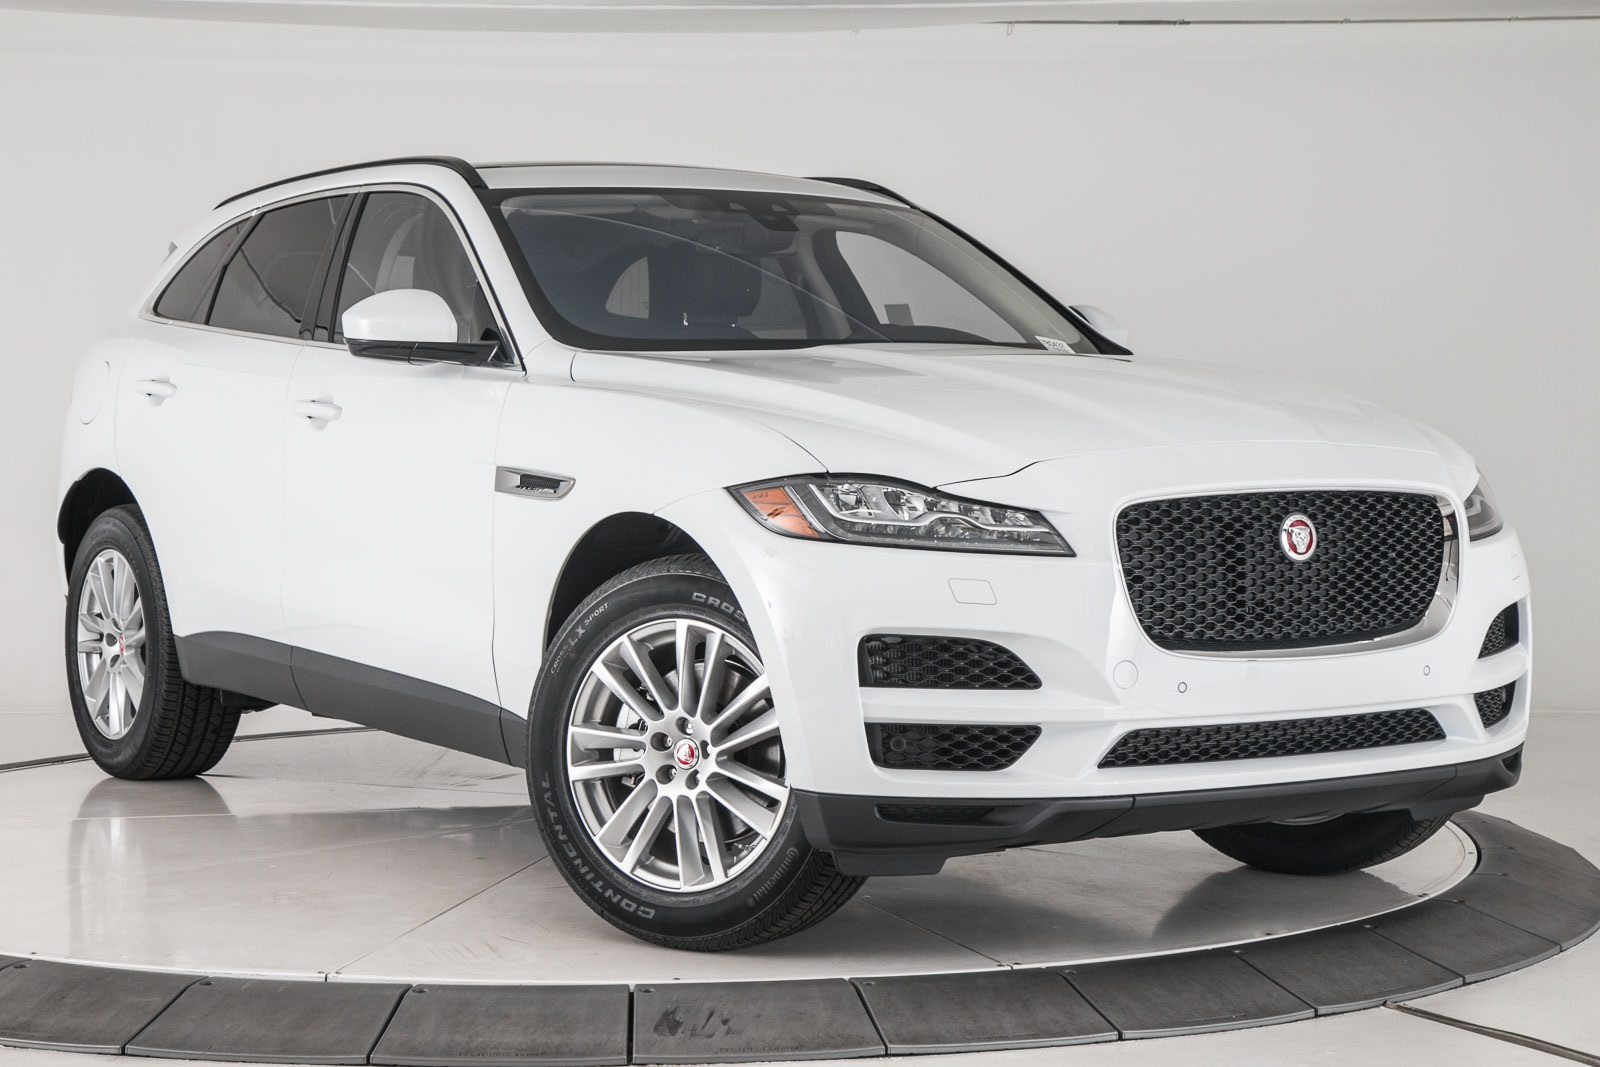 Jaguar Anaheim Hills >> New 2018 Jaguar F-PACE 30t Prestige 4D Sport Utility in Pasadena #780437 | The Rusnak Auto Group